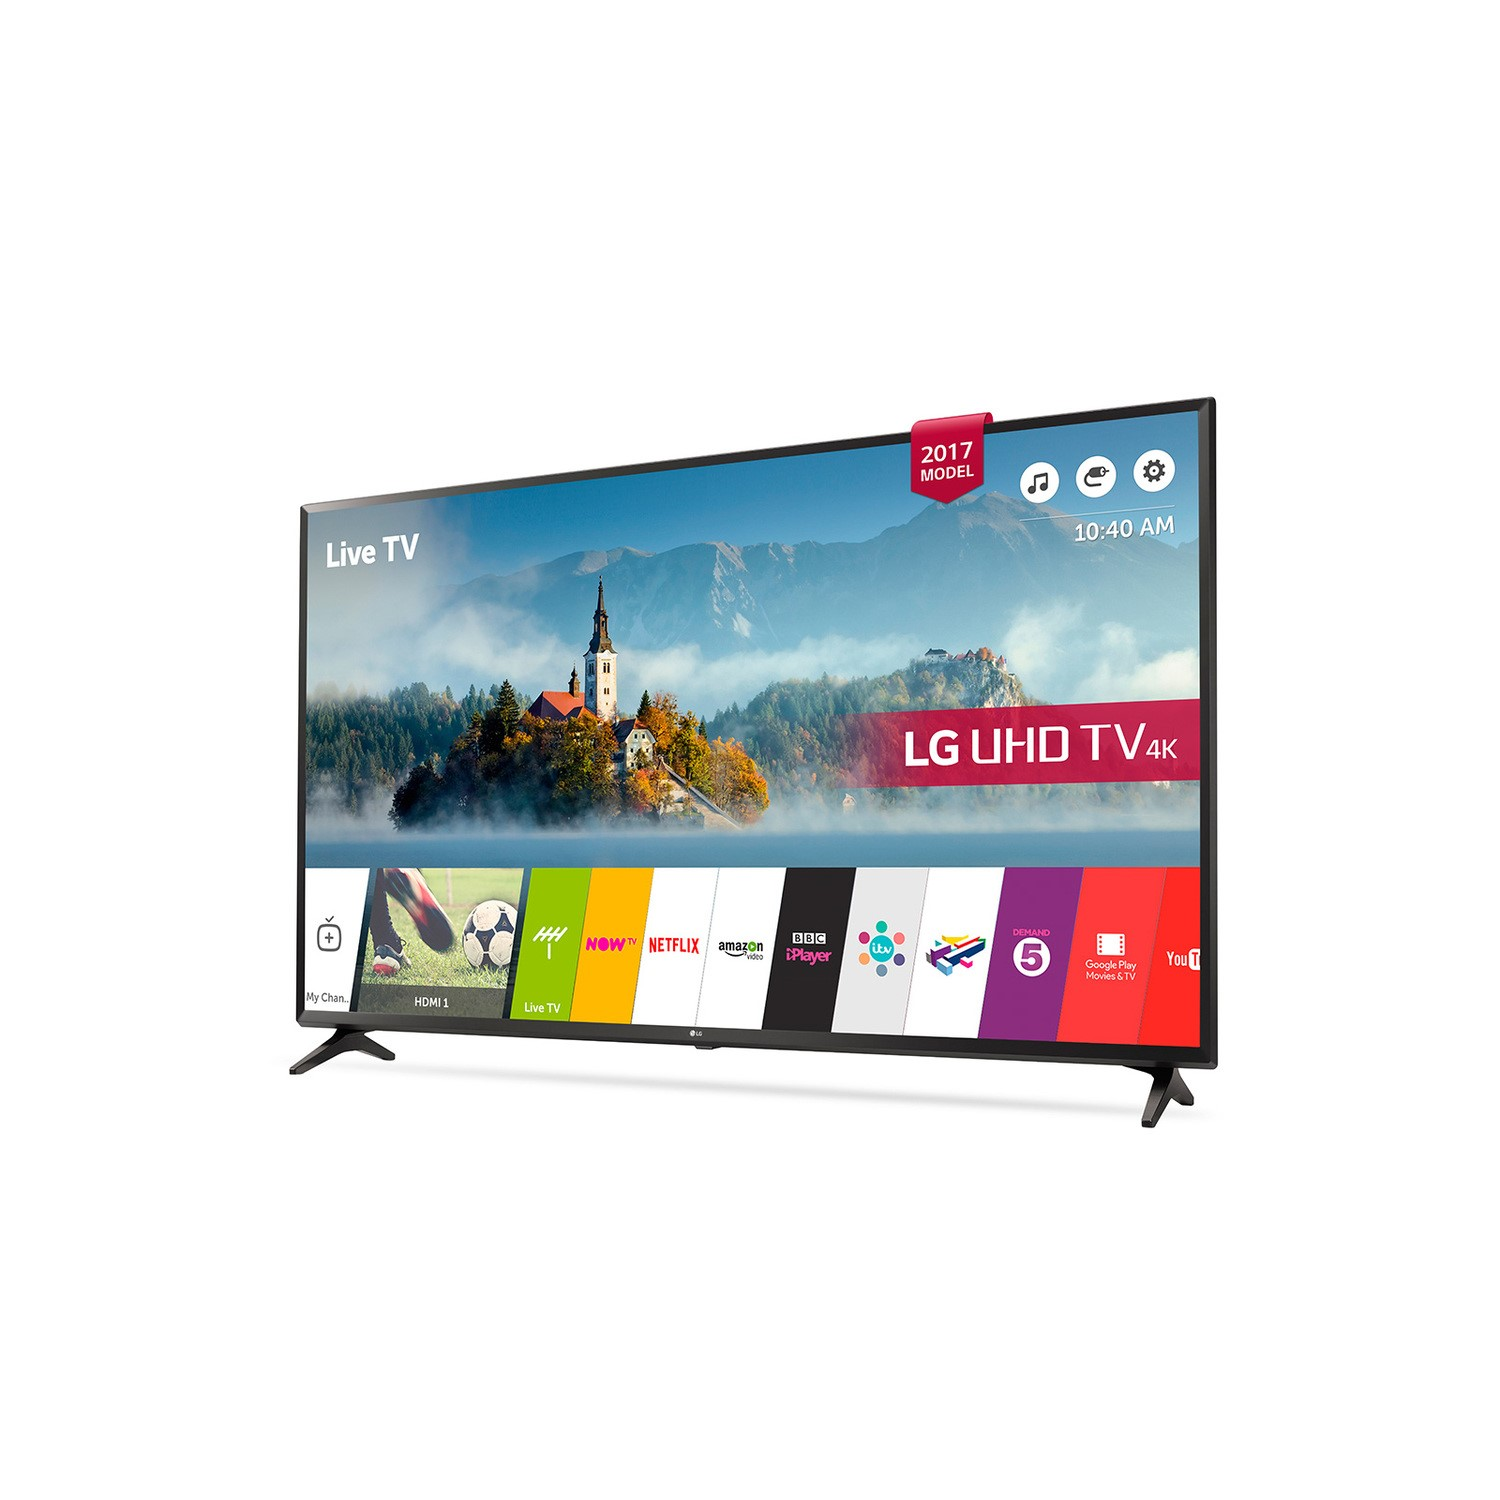 lg 4k uhd smart hdr how to connect to internet